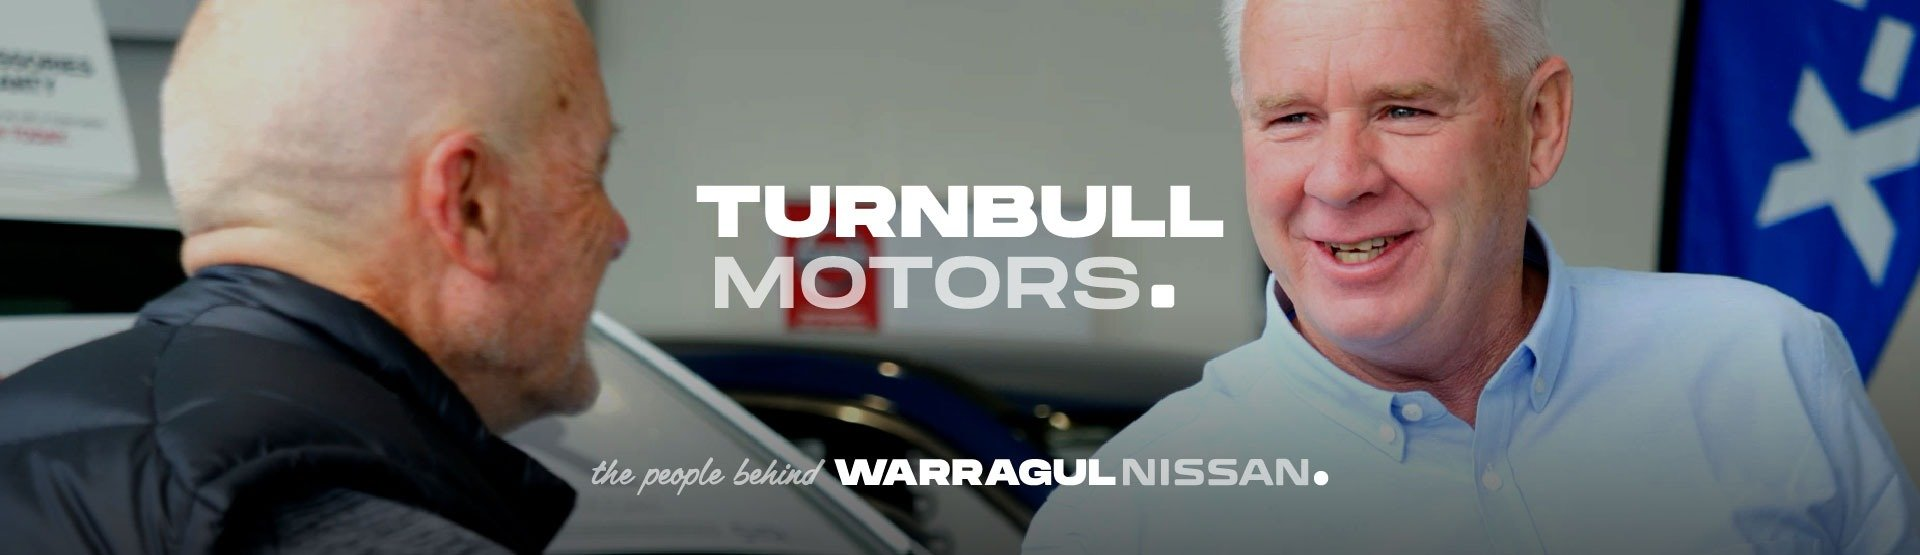 Warragul Nissan Turnbull Motors